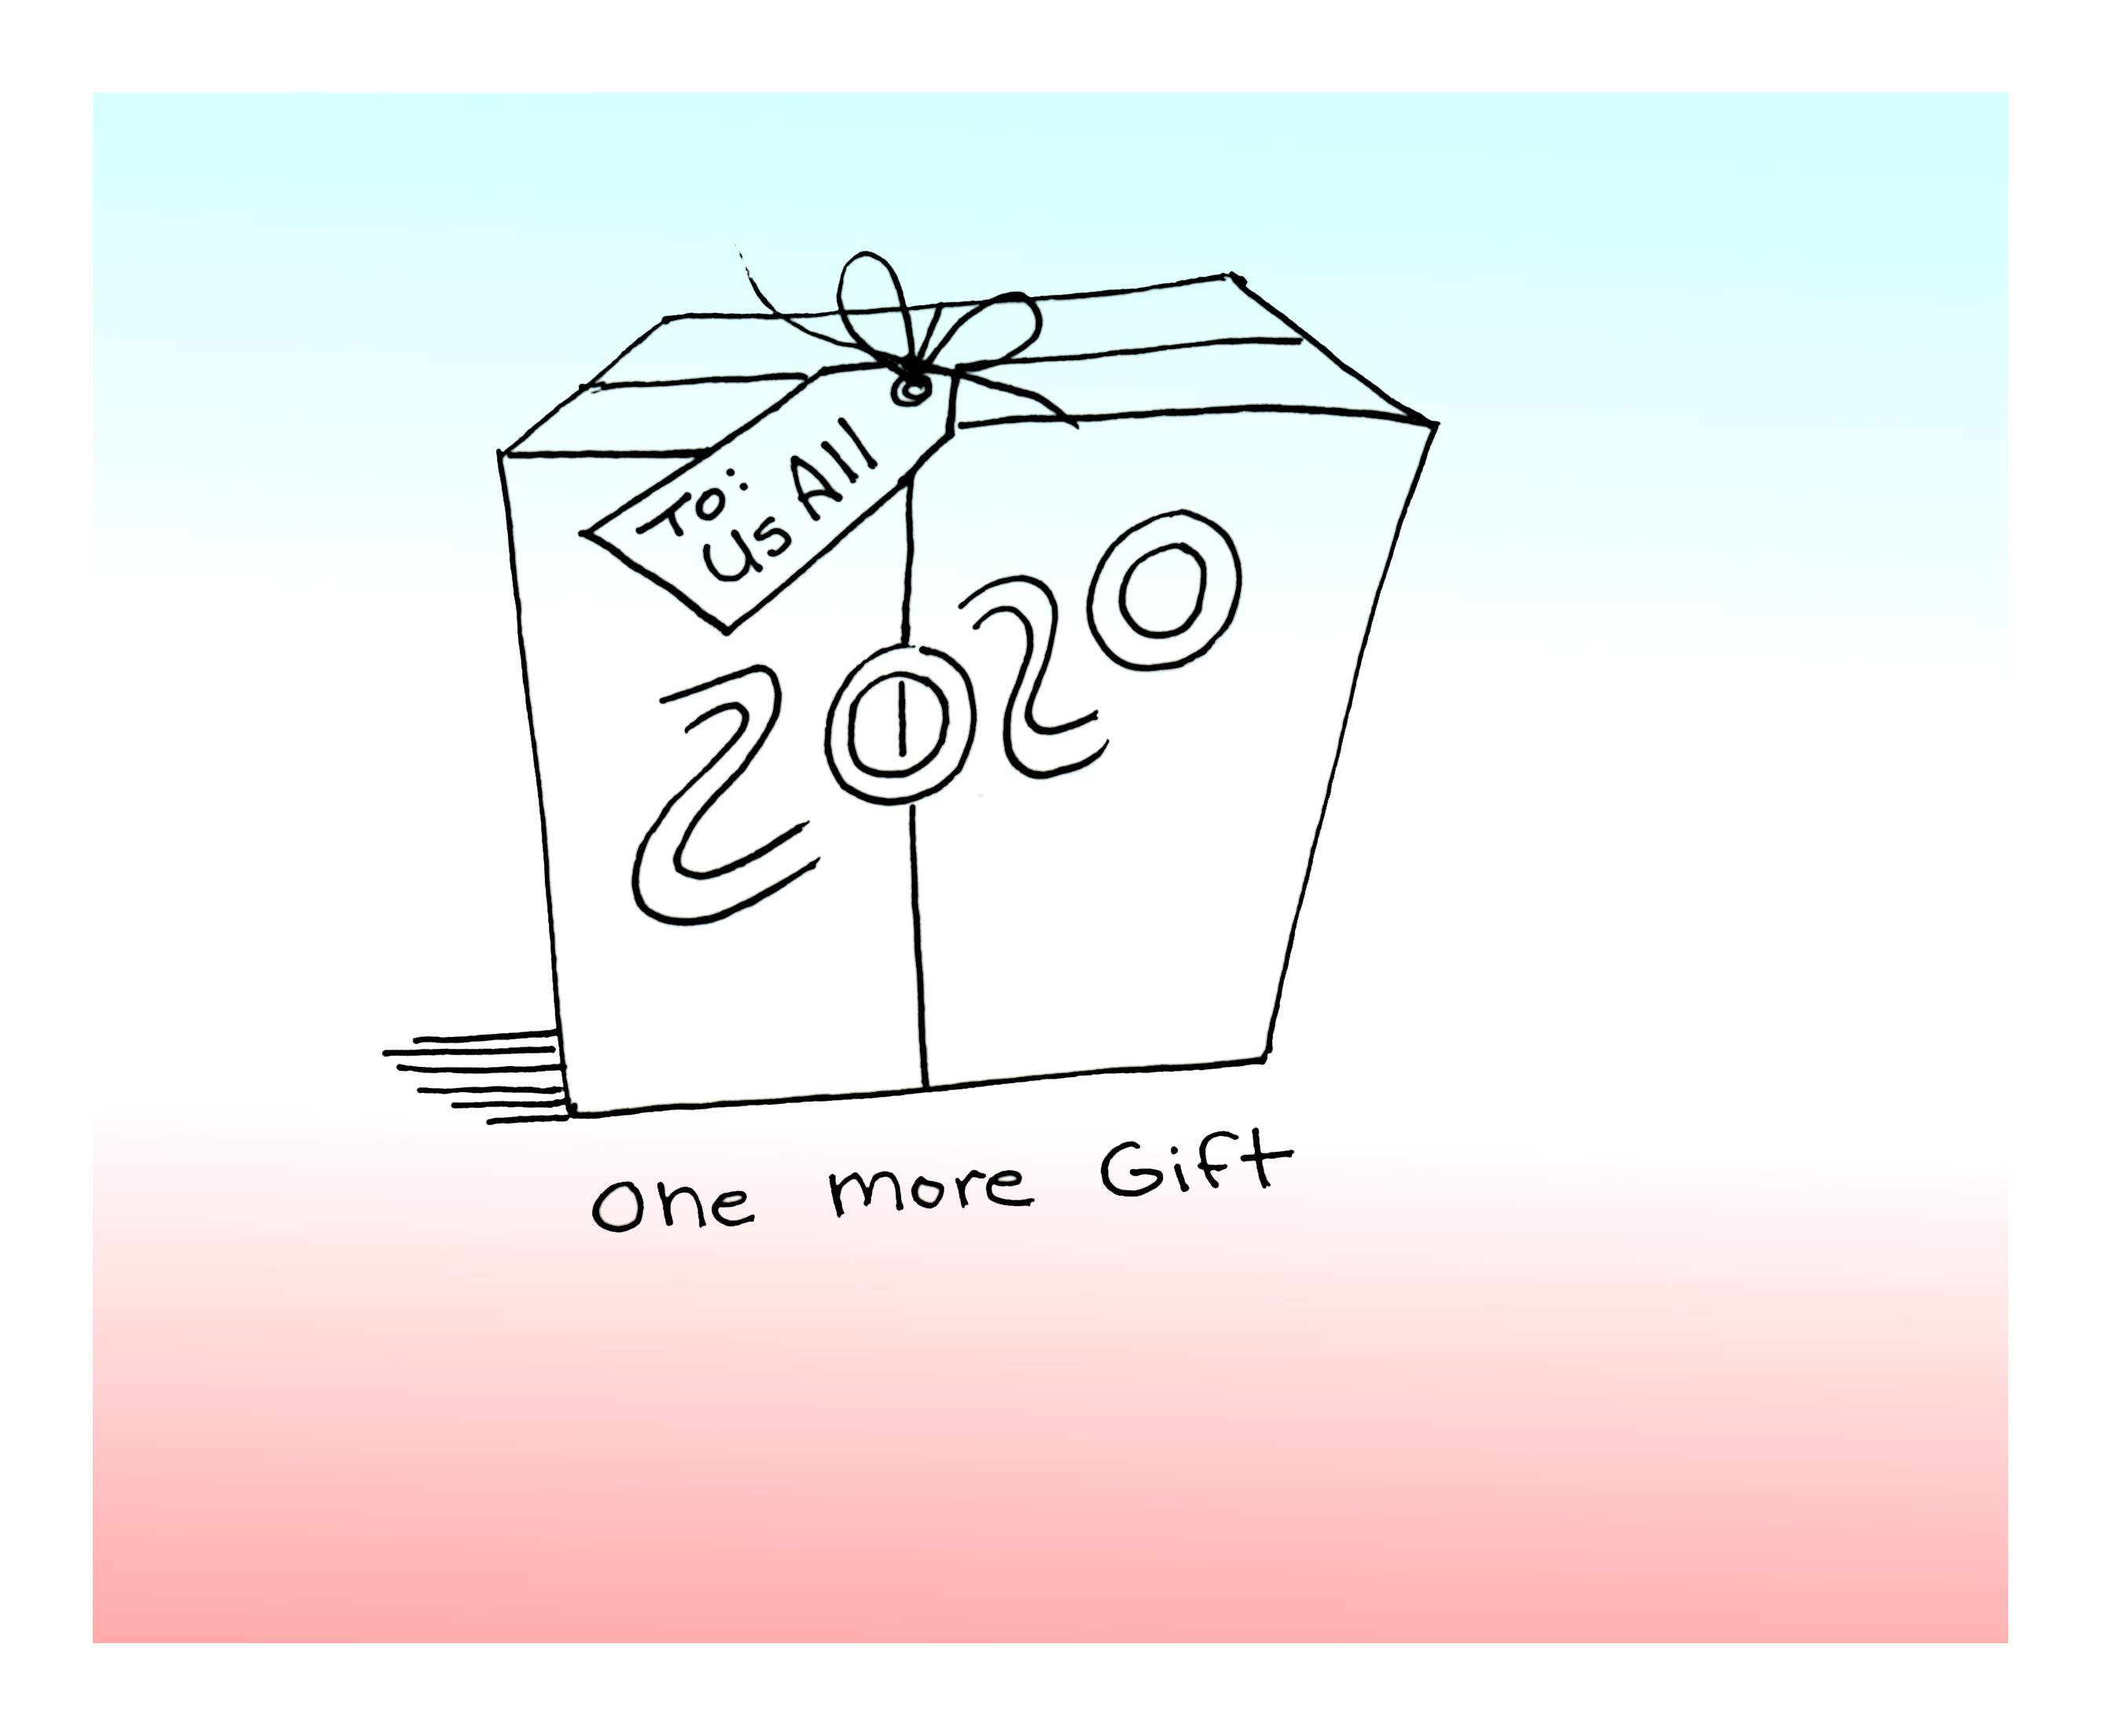 One More Gift sketch Andrew Henderson